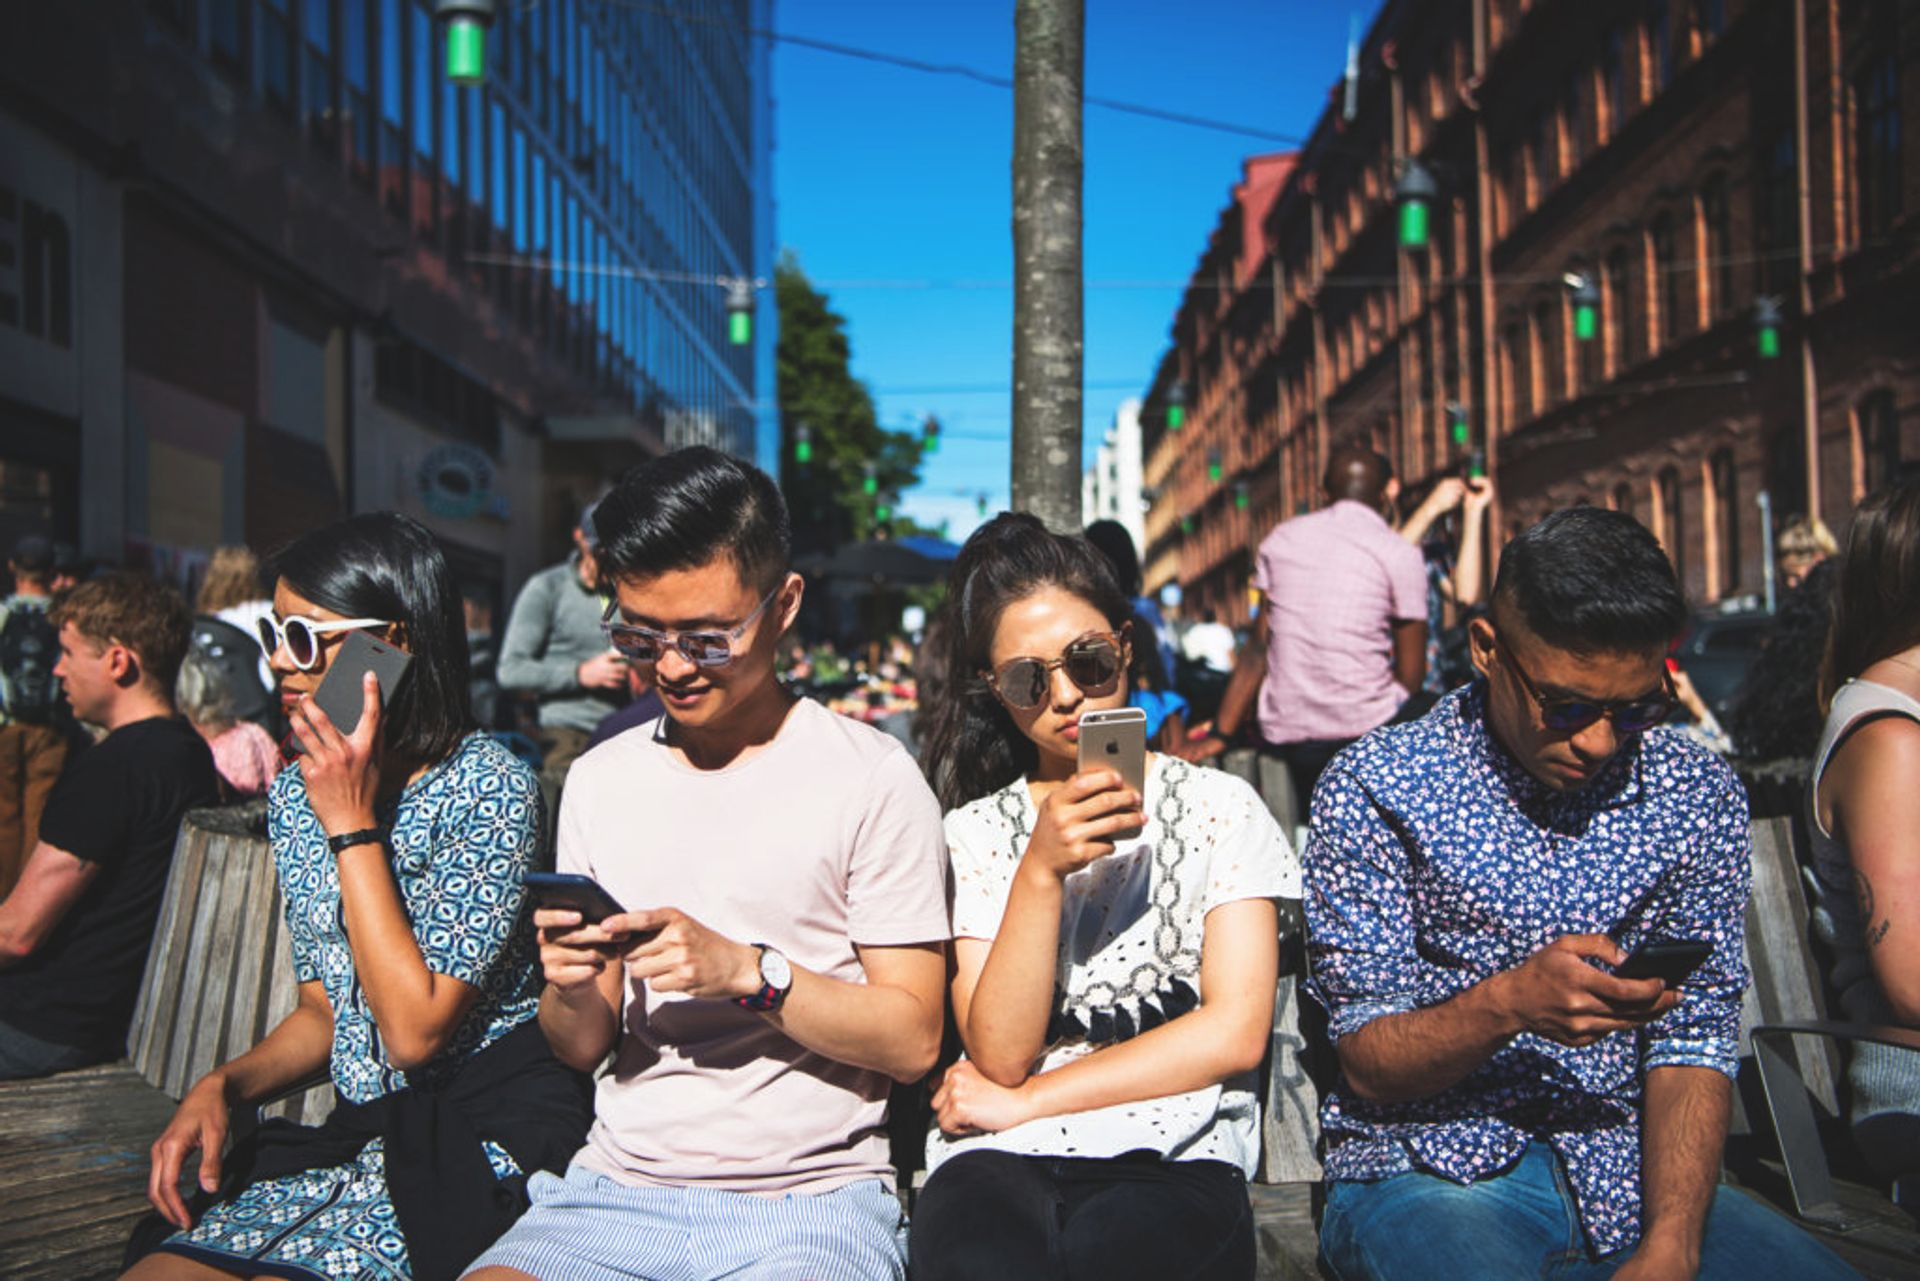 Students using cellphones